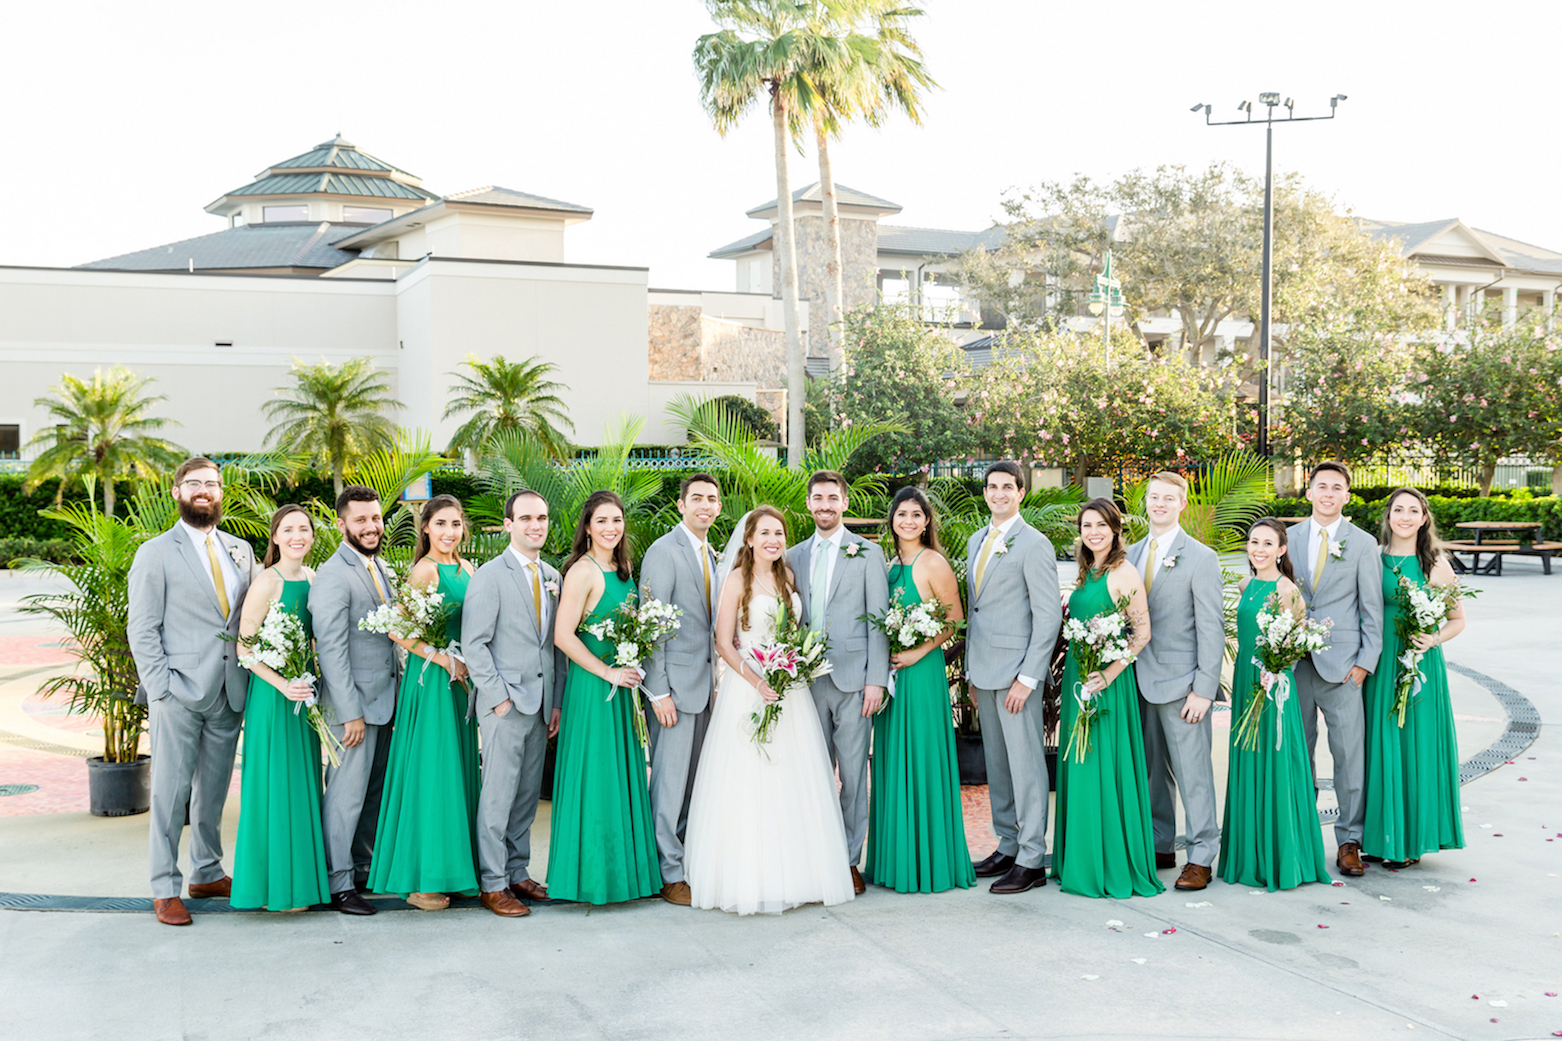 A Unique Wedding at a Seaplane Hangar in Vero Beach, FL